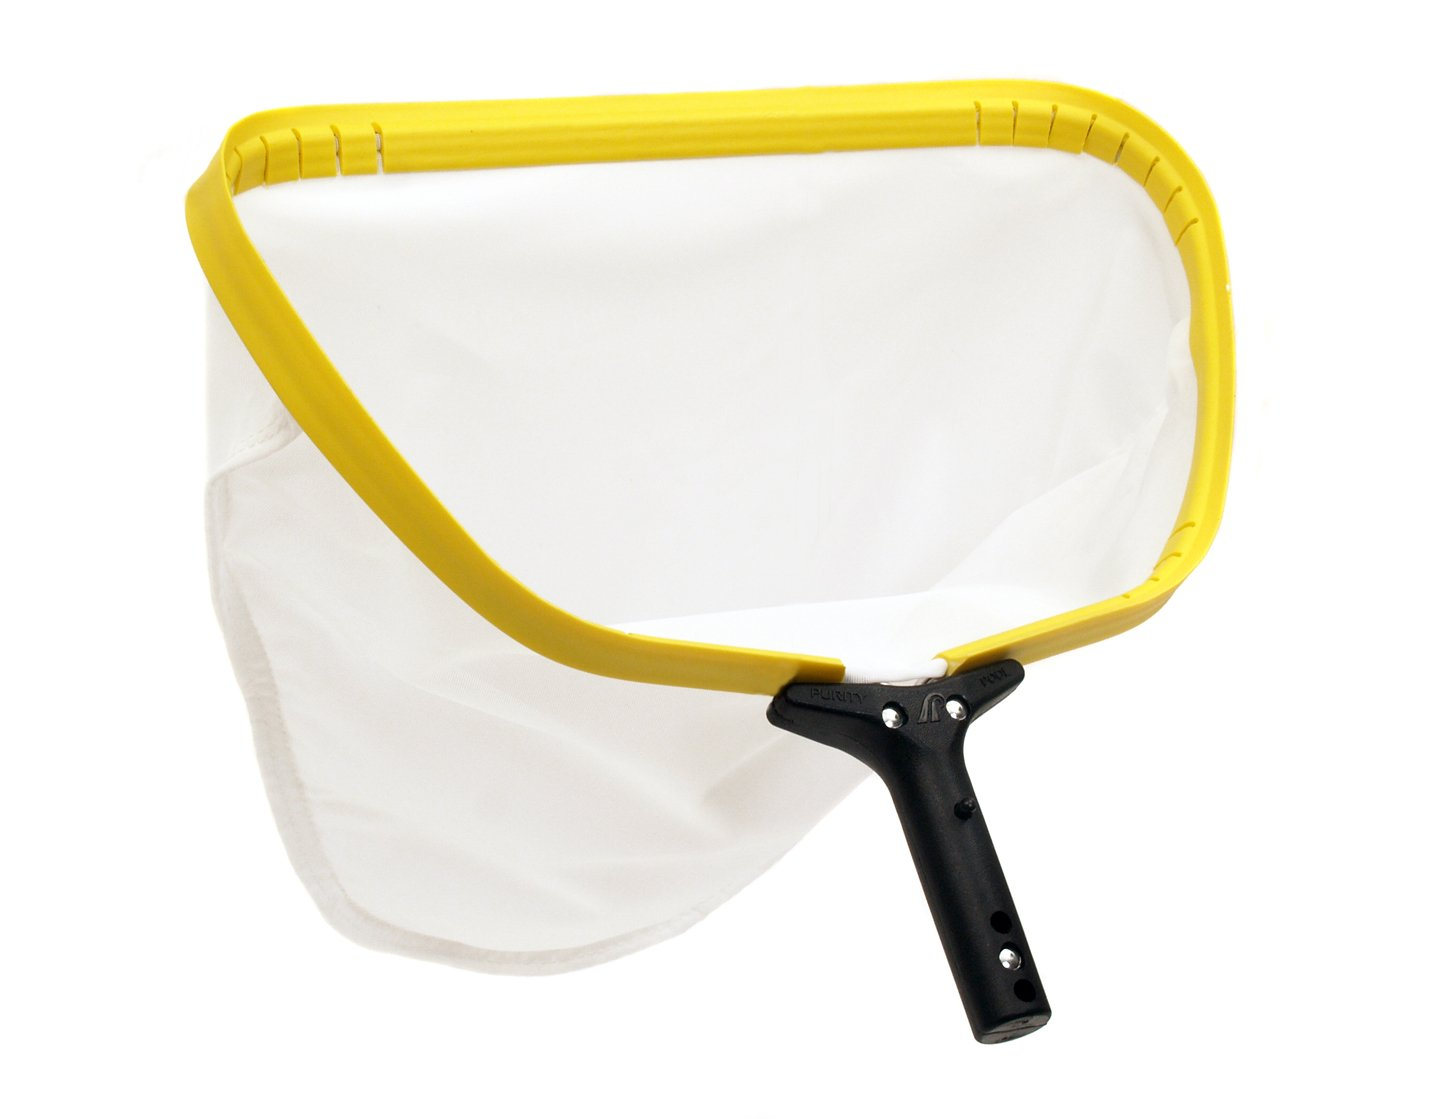 Purity Pool PCSLT Pelican Featherweight 16-Inch Residential Leaf Rake, Silt Model by Purity Pool